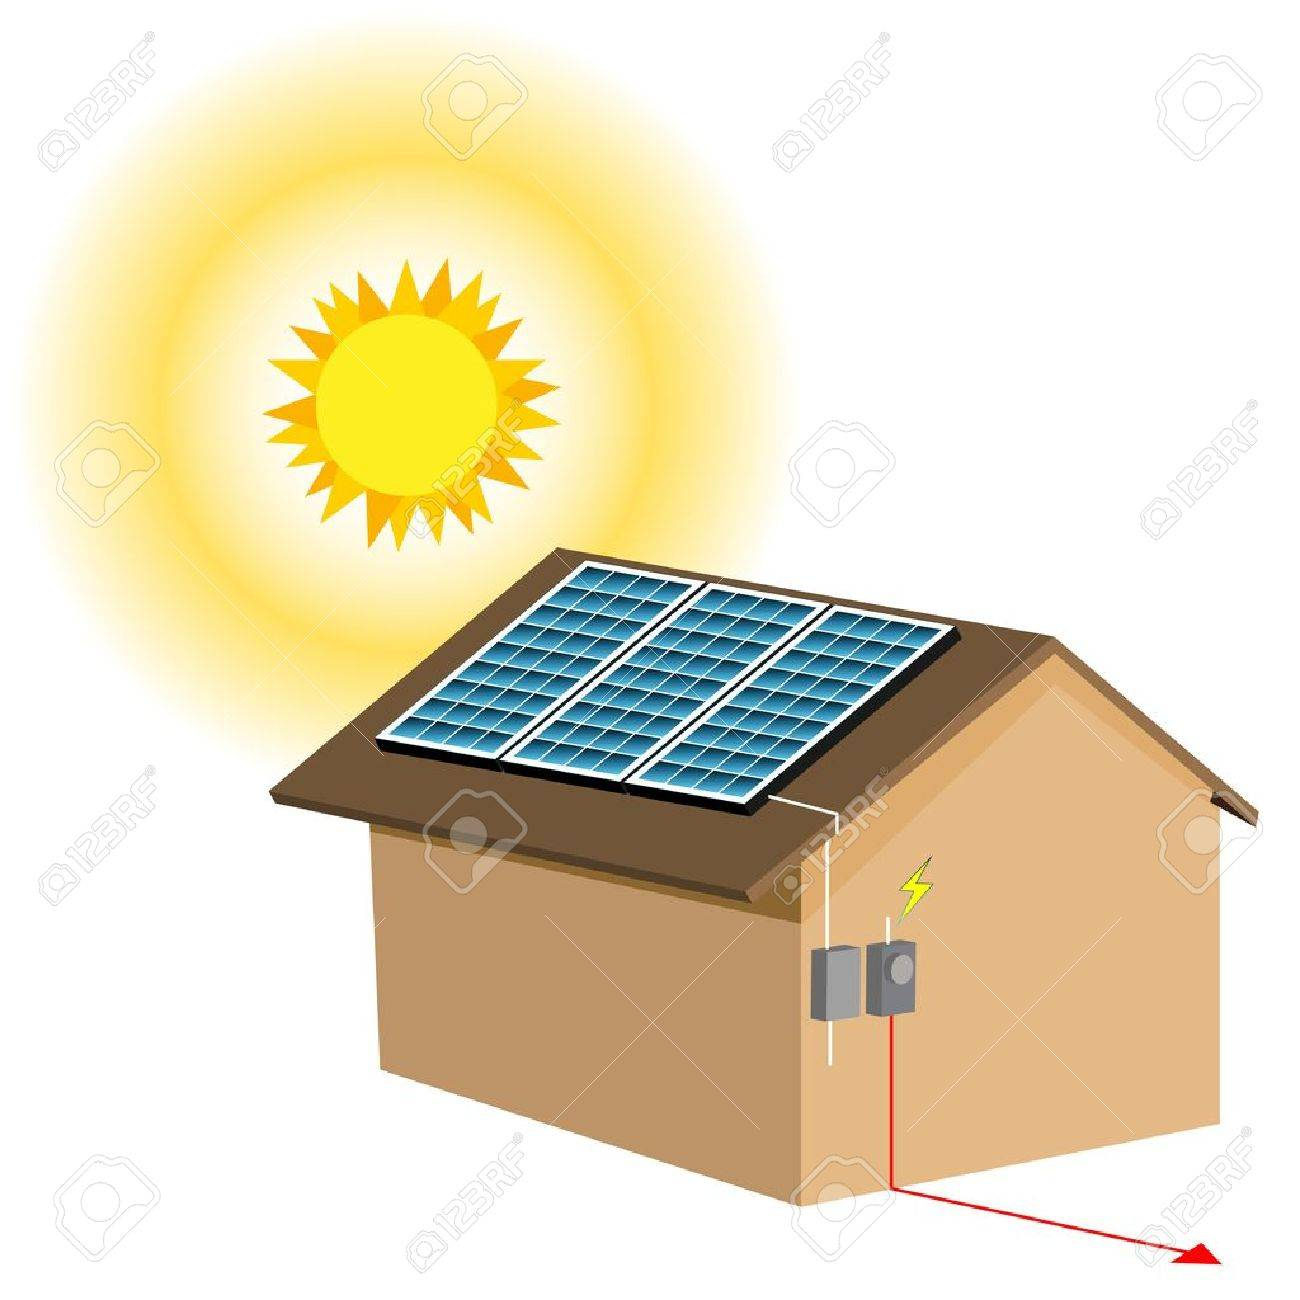 an image of a residential solar panel system royalty free cliparts rh 123rf com solar energy clipart images solar energy free clipart